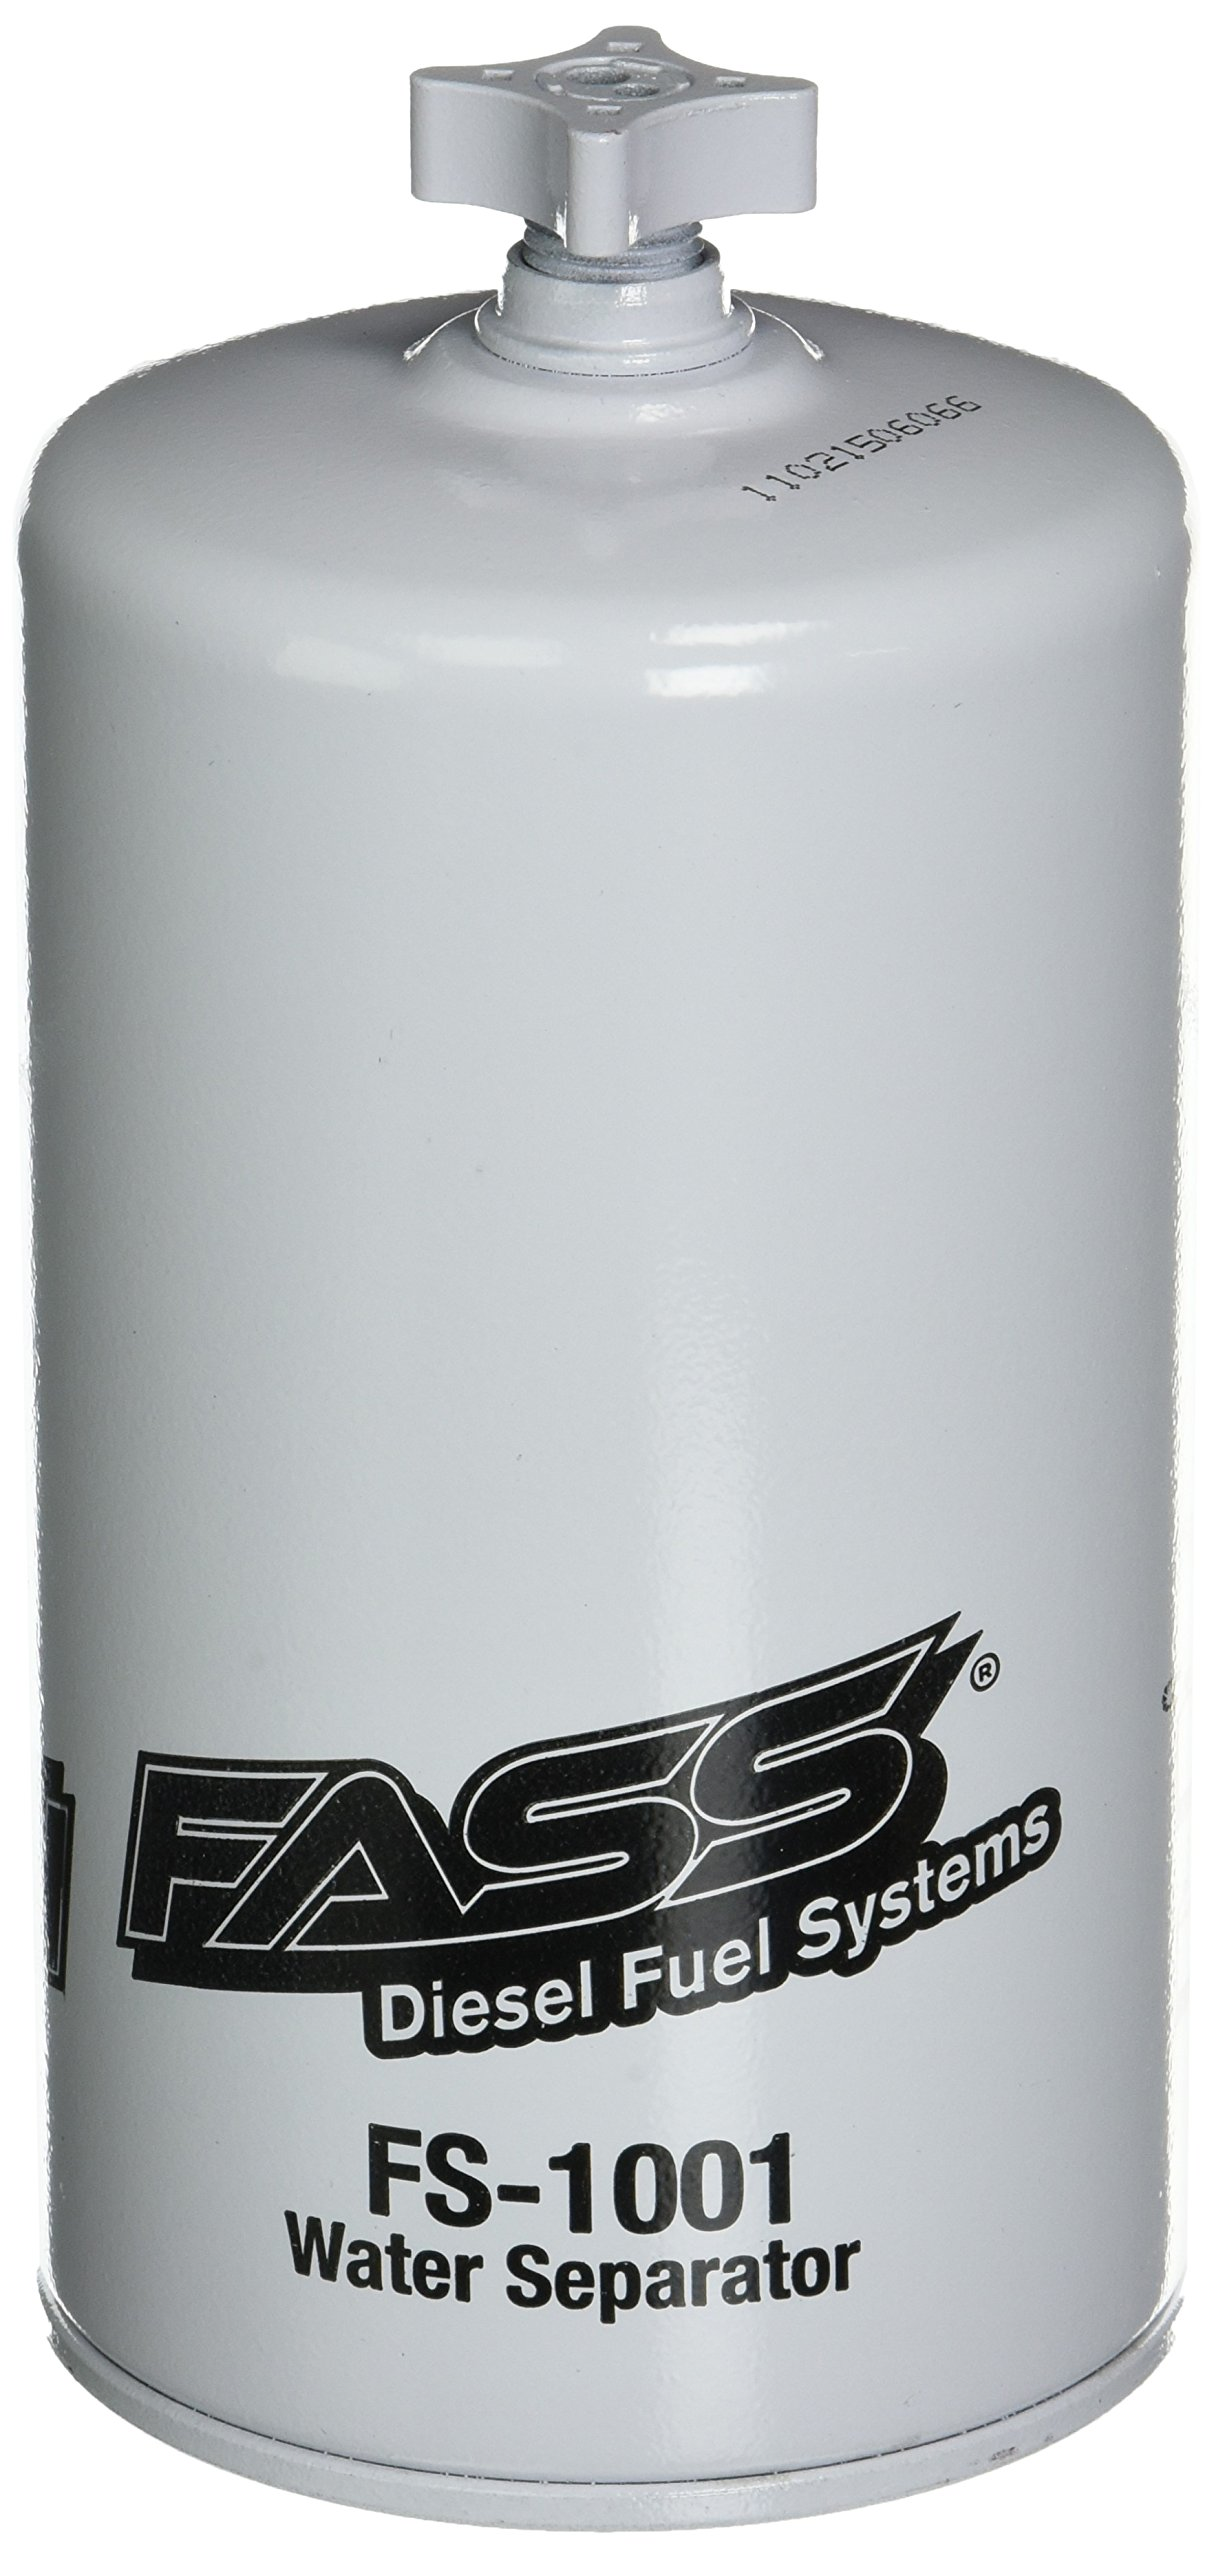 FASS (FS-1001) HD Series Water Separator